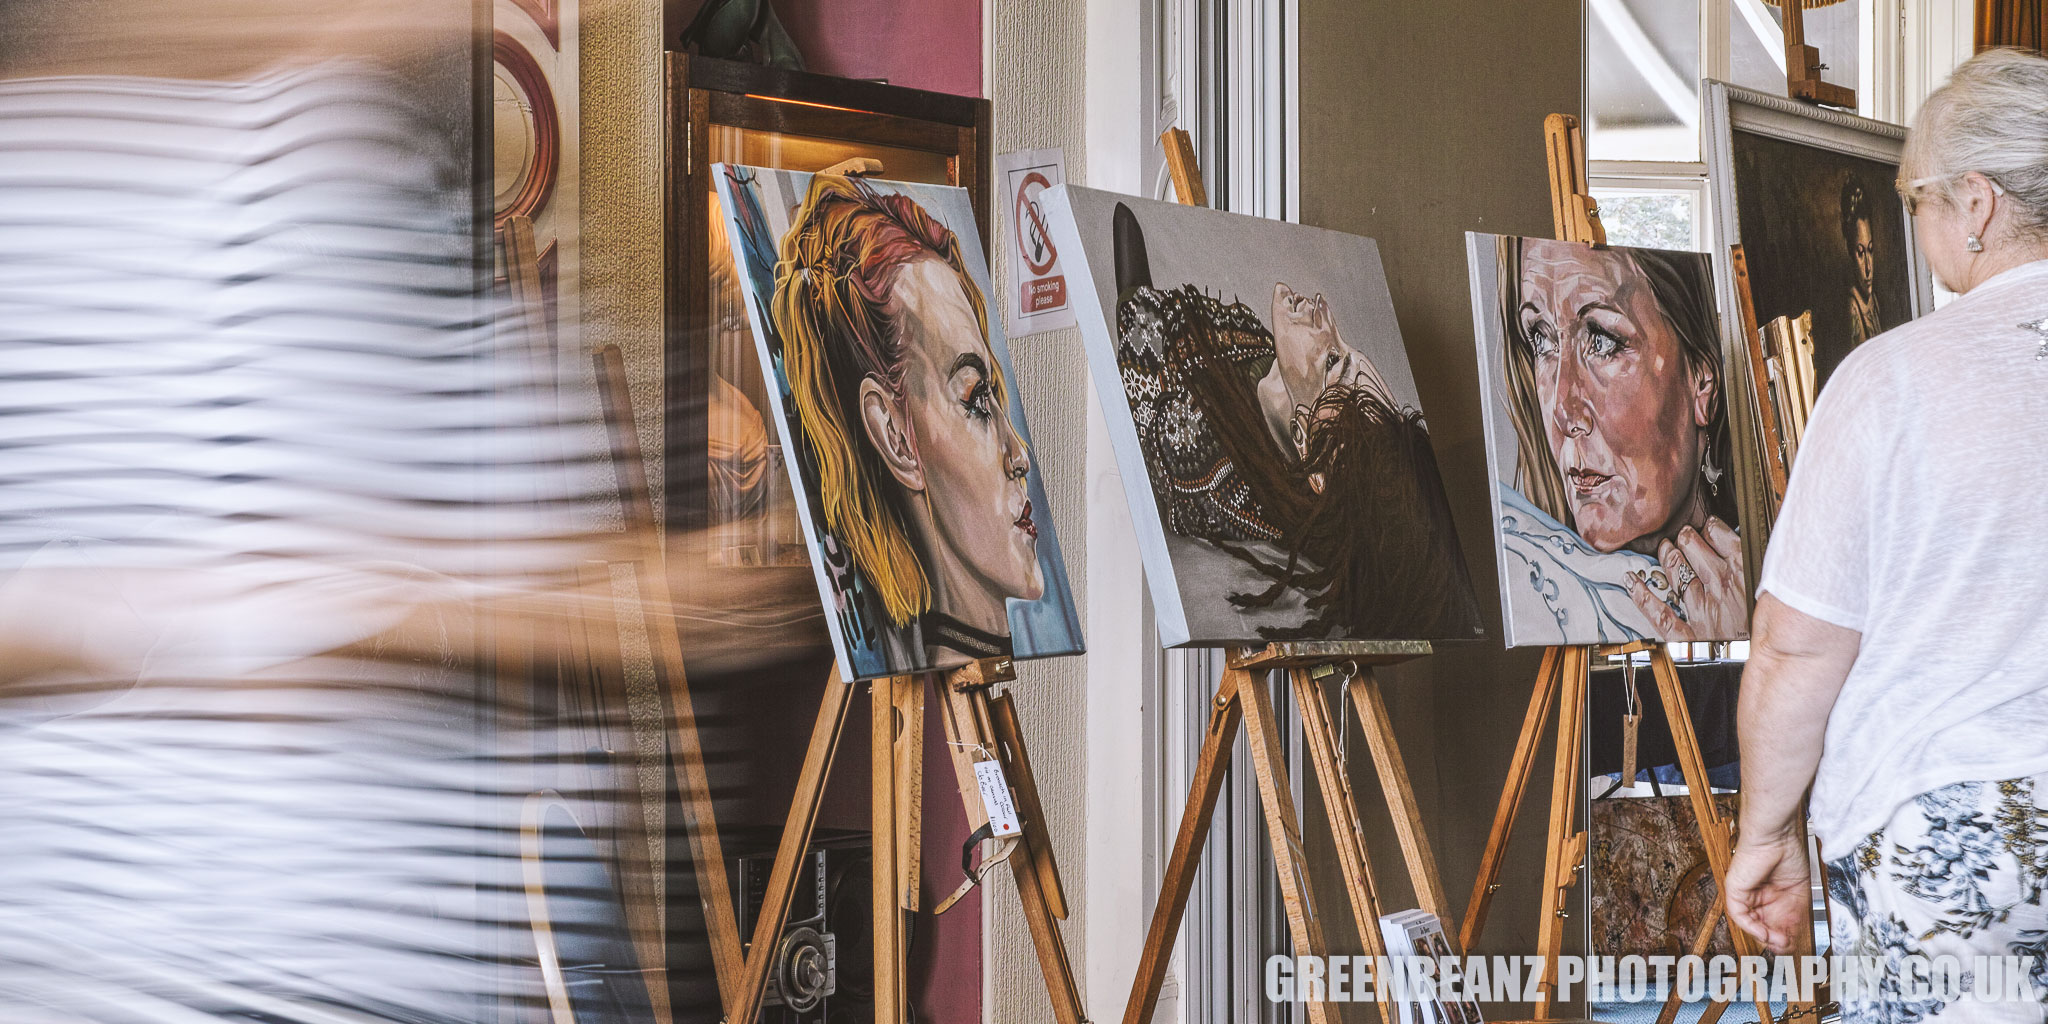 Jo Beer's paintings exhibited at the Reuben Lenkiewicz Art Festival in 2019